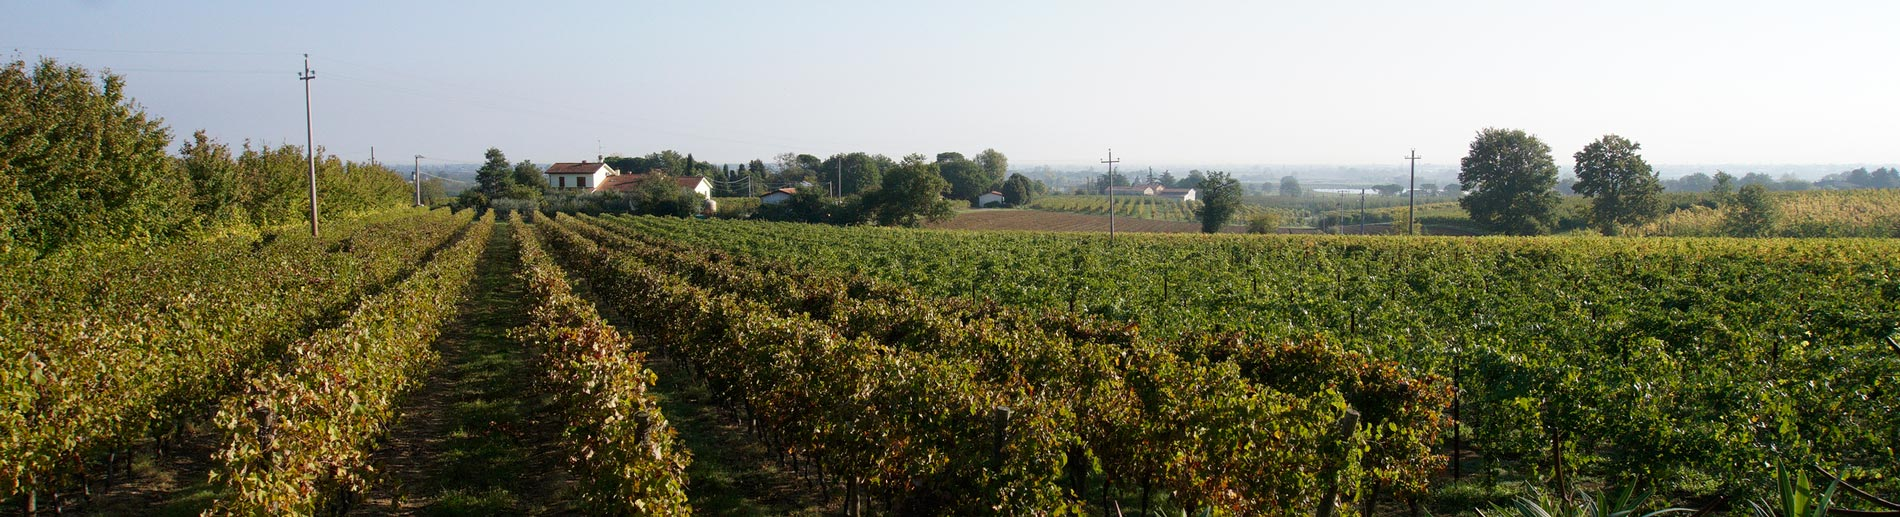 Discover the Romagna Wine Region of Italy